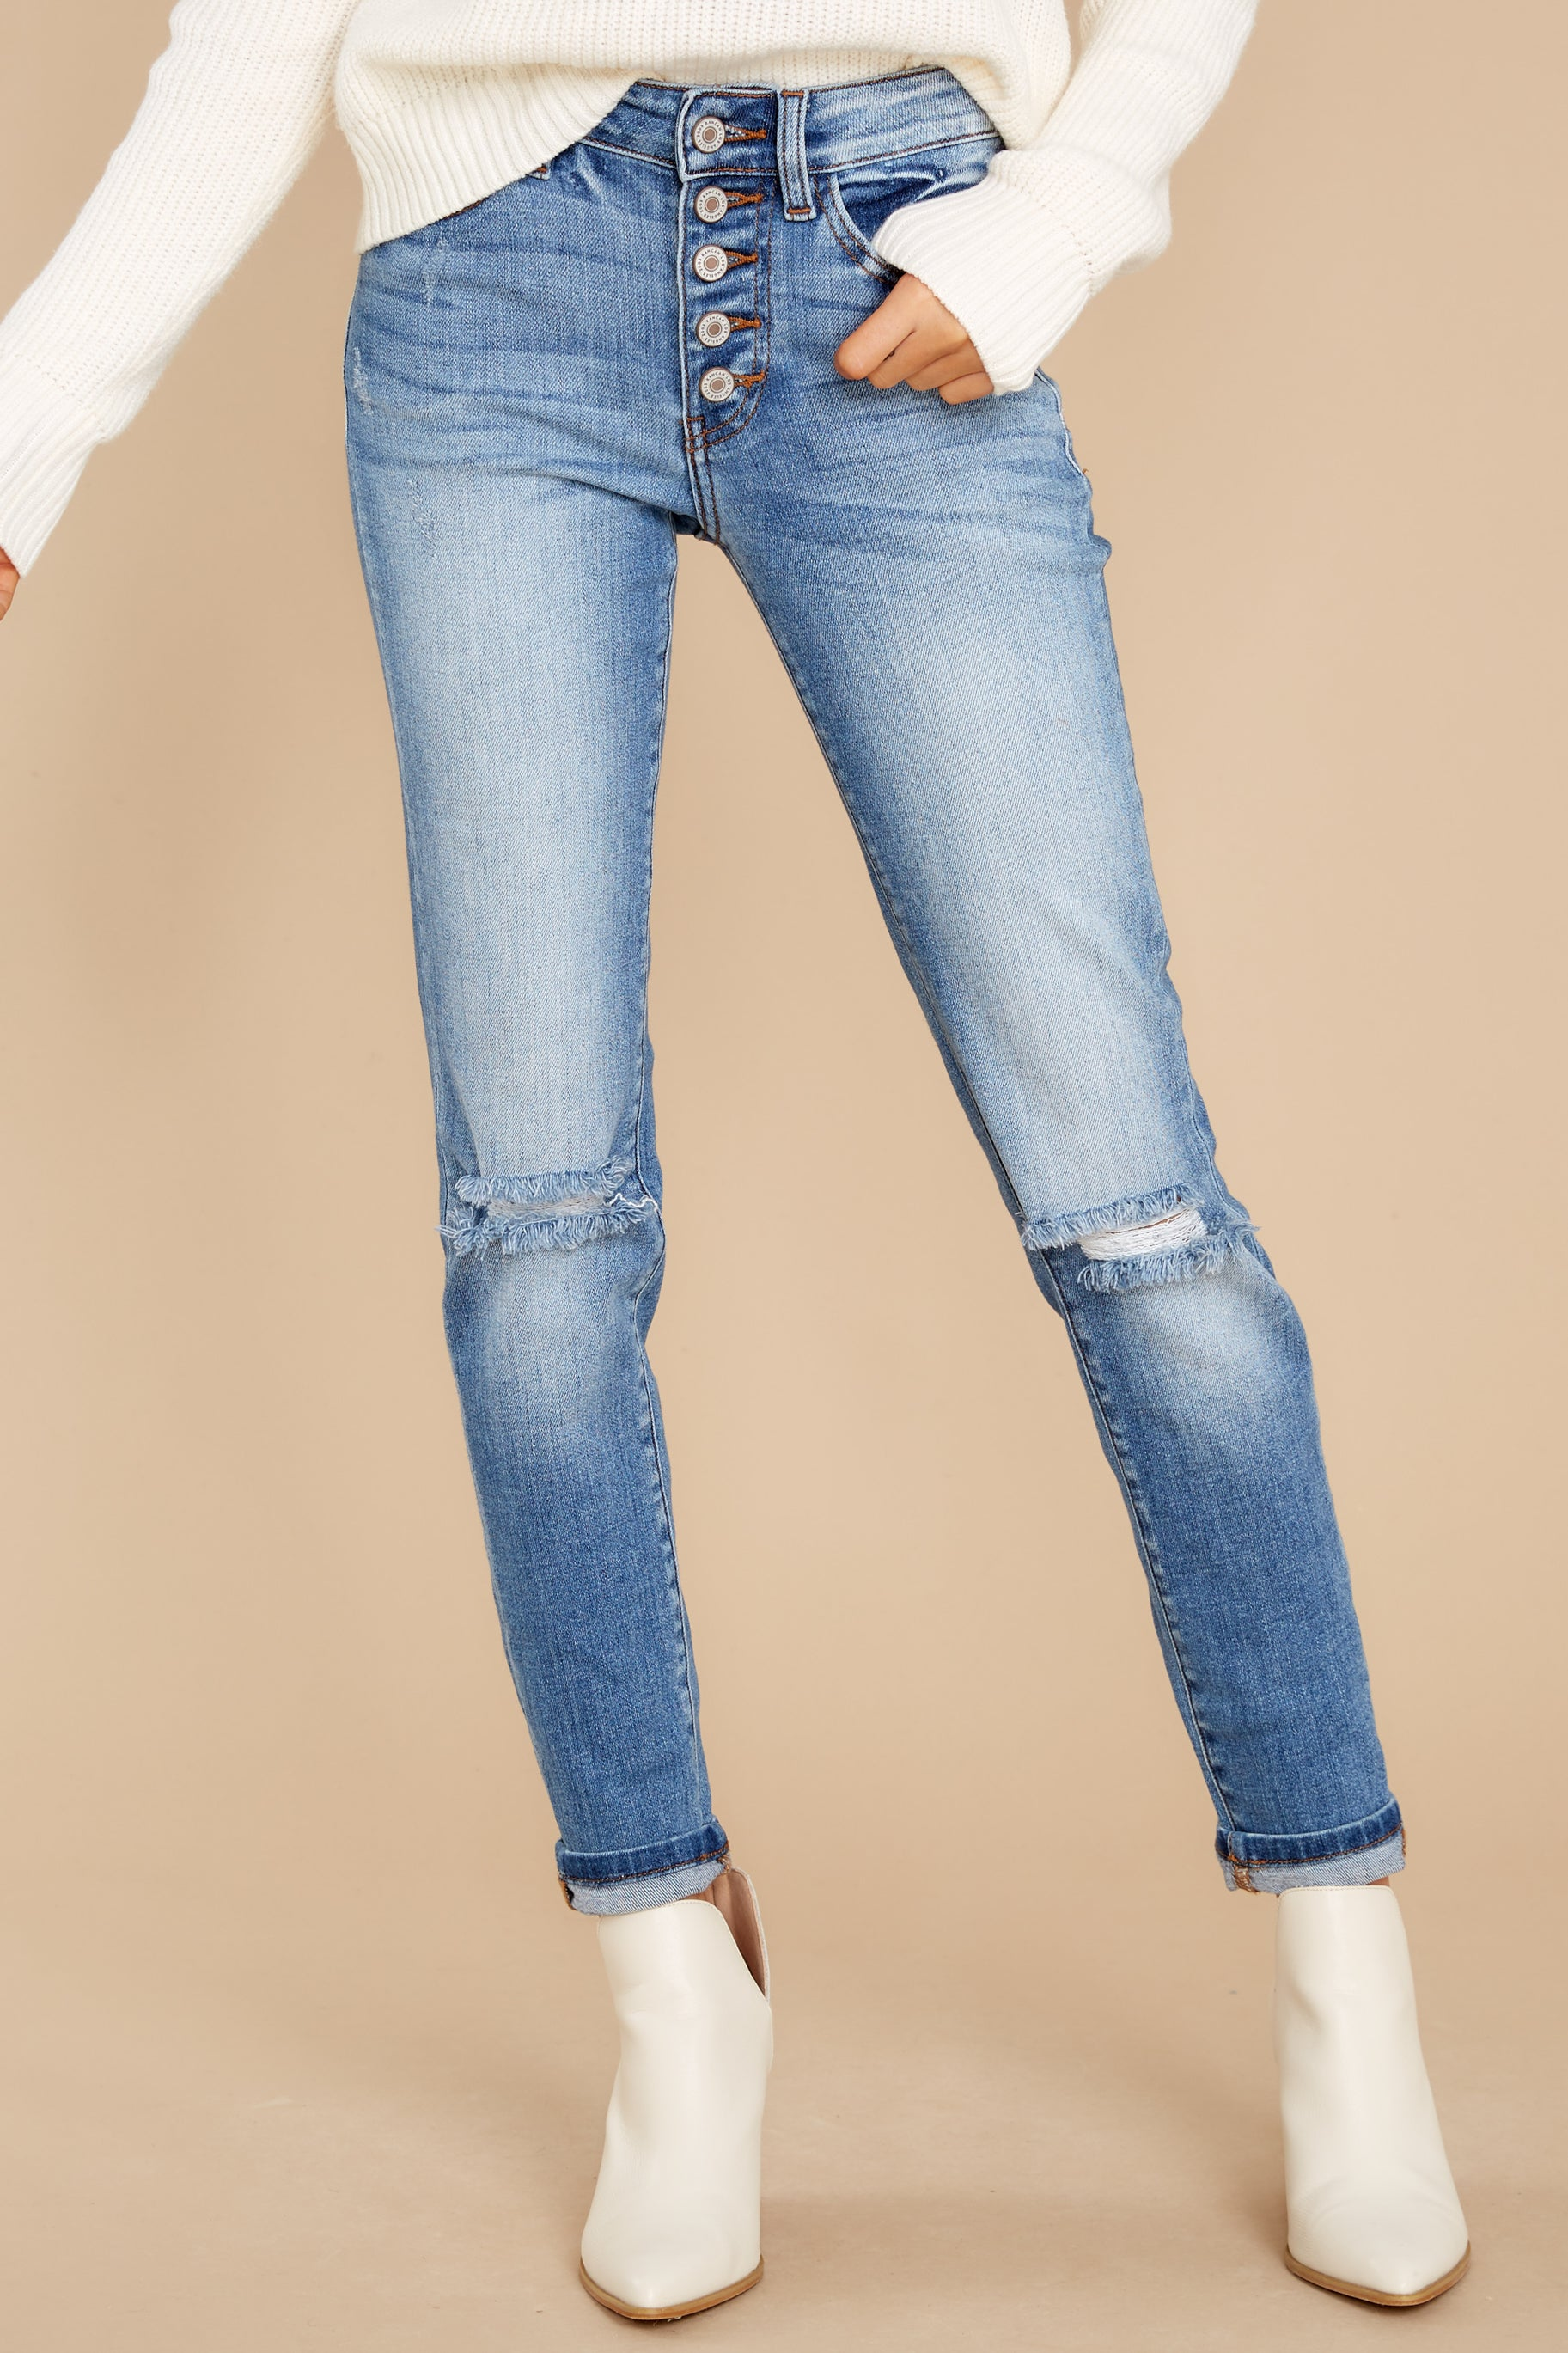 3 Look This Way Light Wash Distressed Skinny Jeans at reddress.com